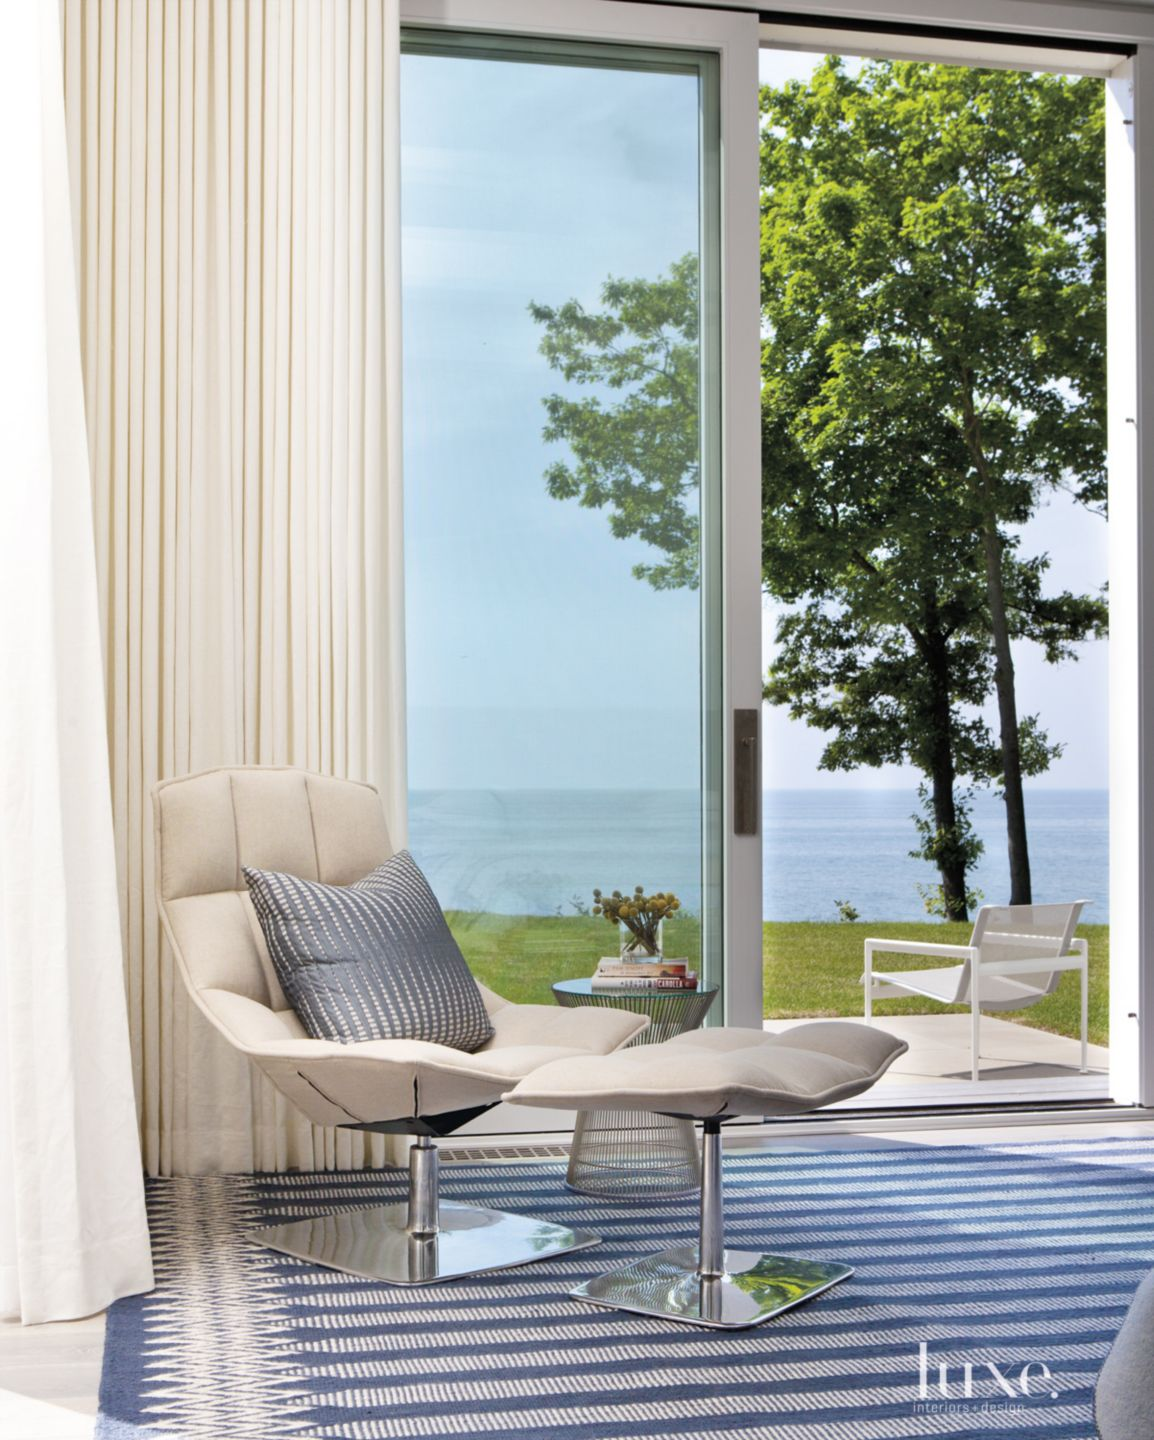 Contemporary White Sitting Area with Glass Sliding Door